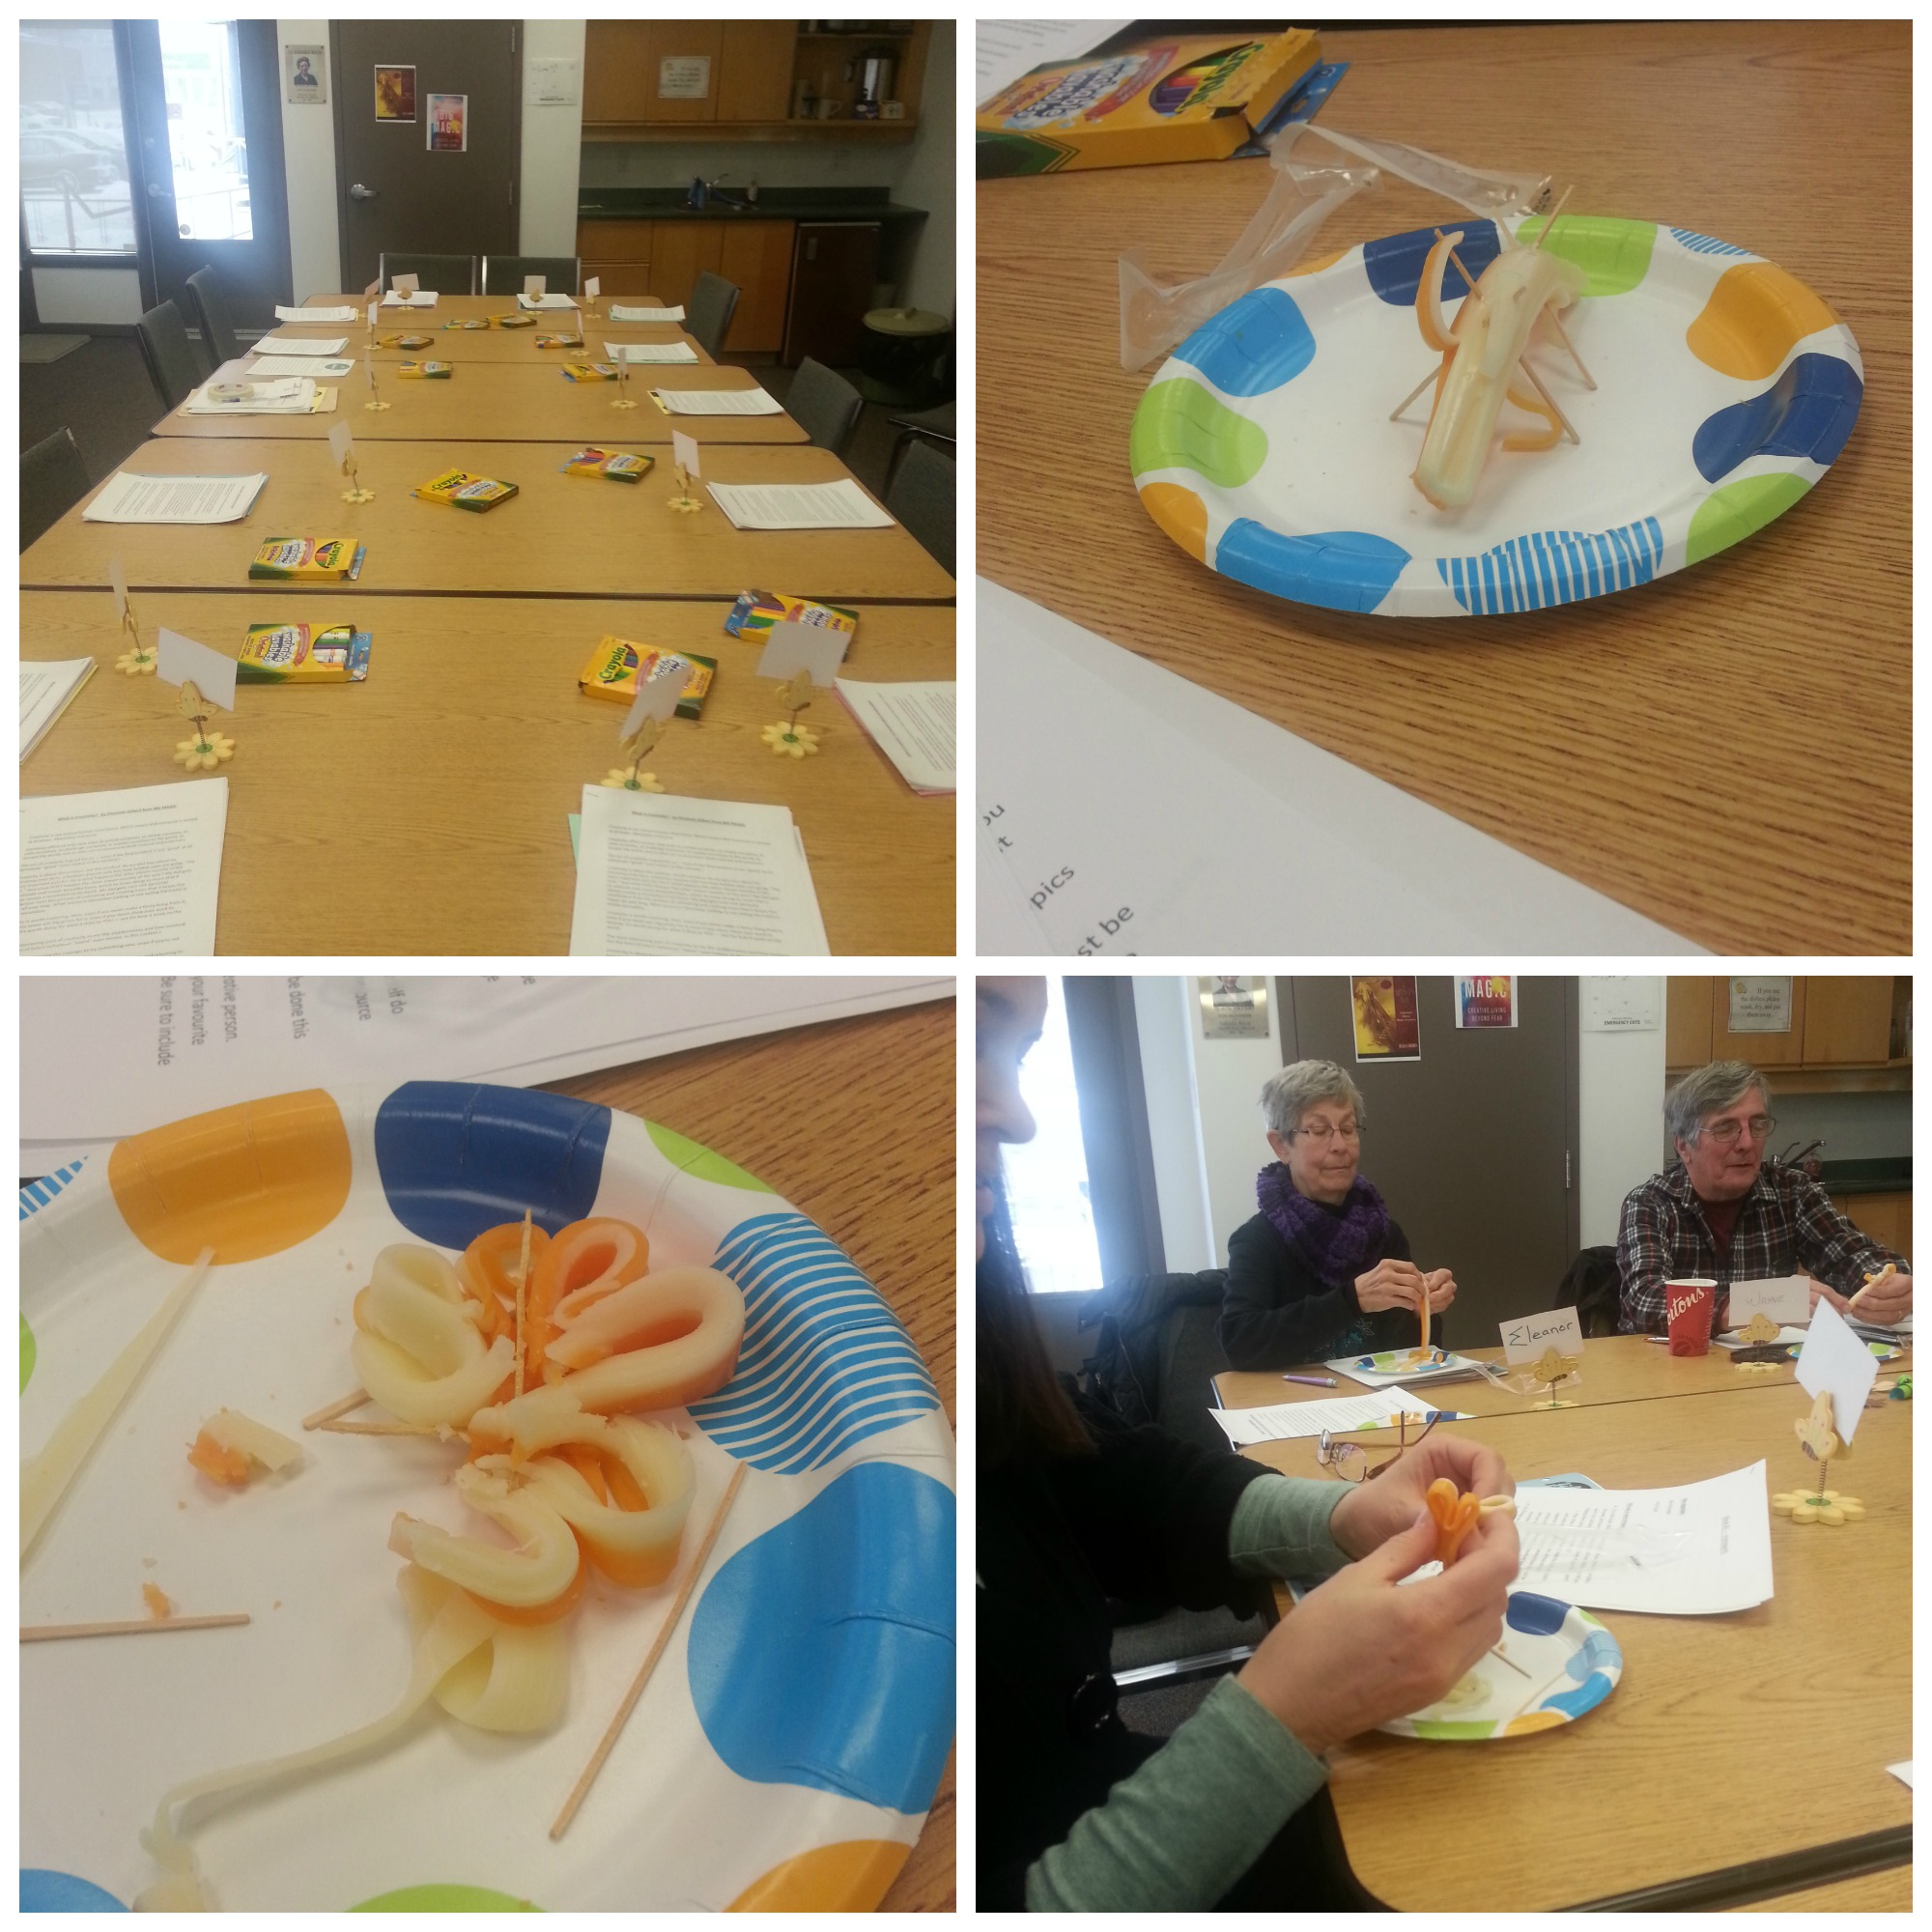 Cheese creations during our creativity activity